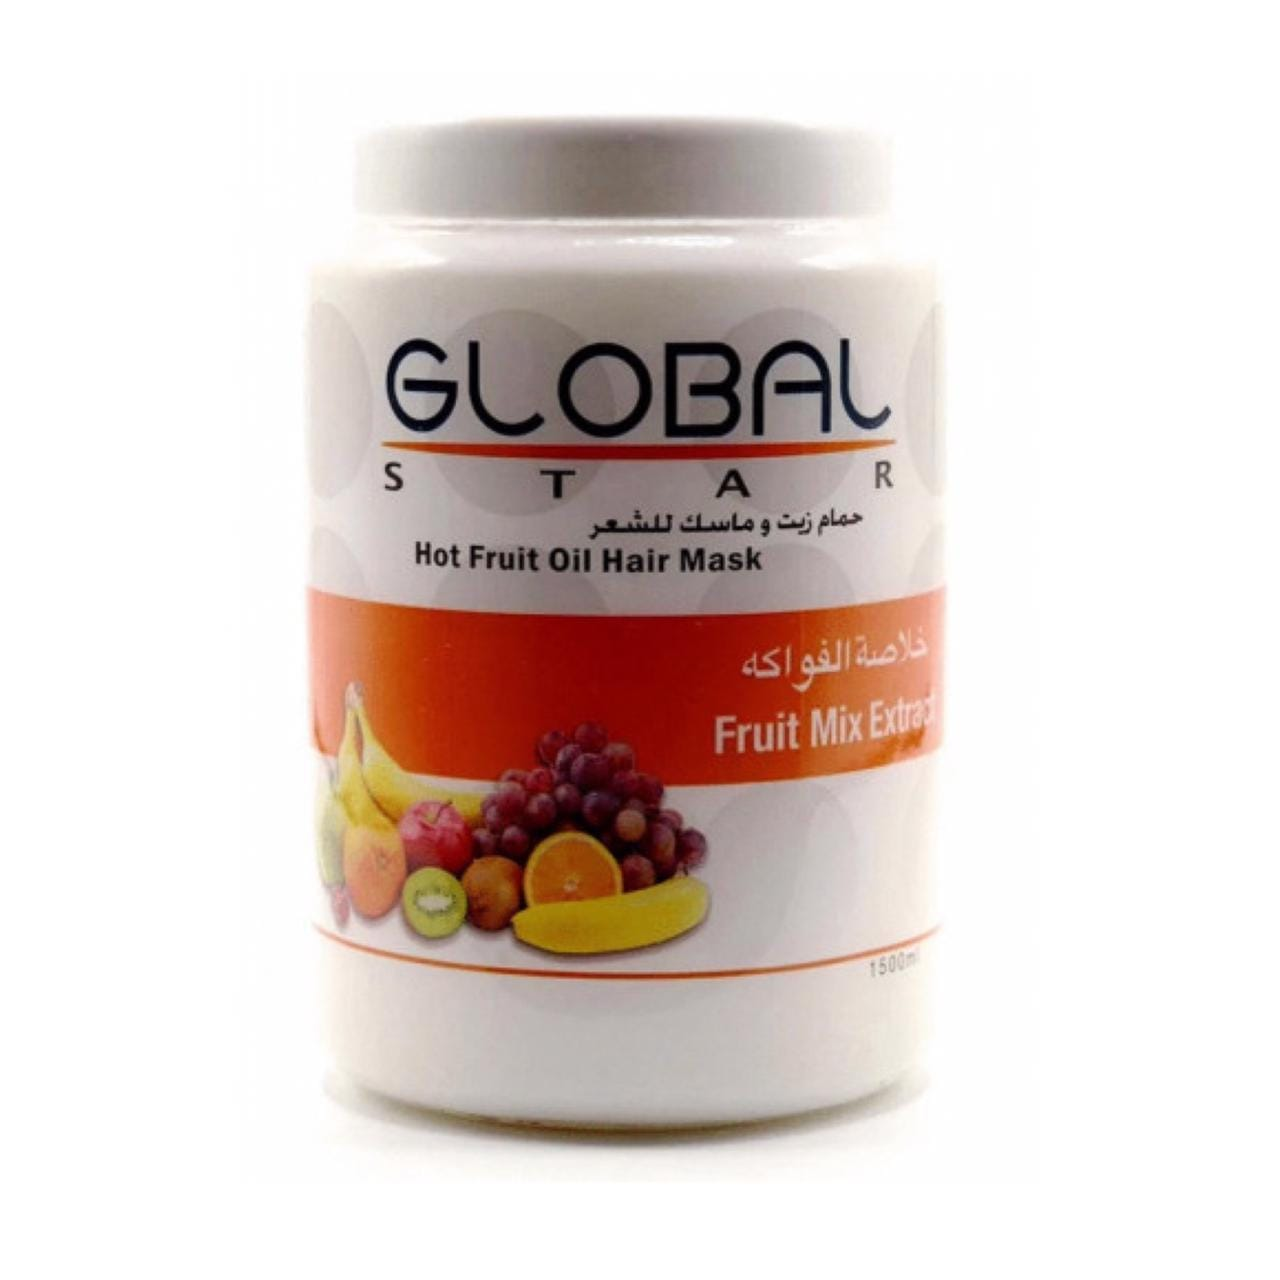 Globalstar Hot Oil Hair Mask Mix Fruit Extract 1500ml